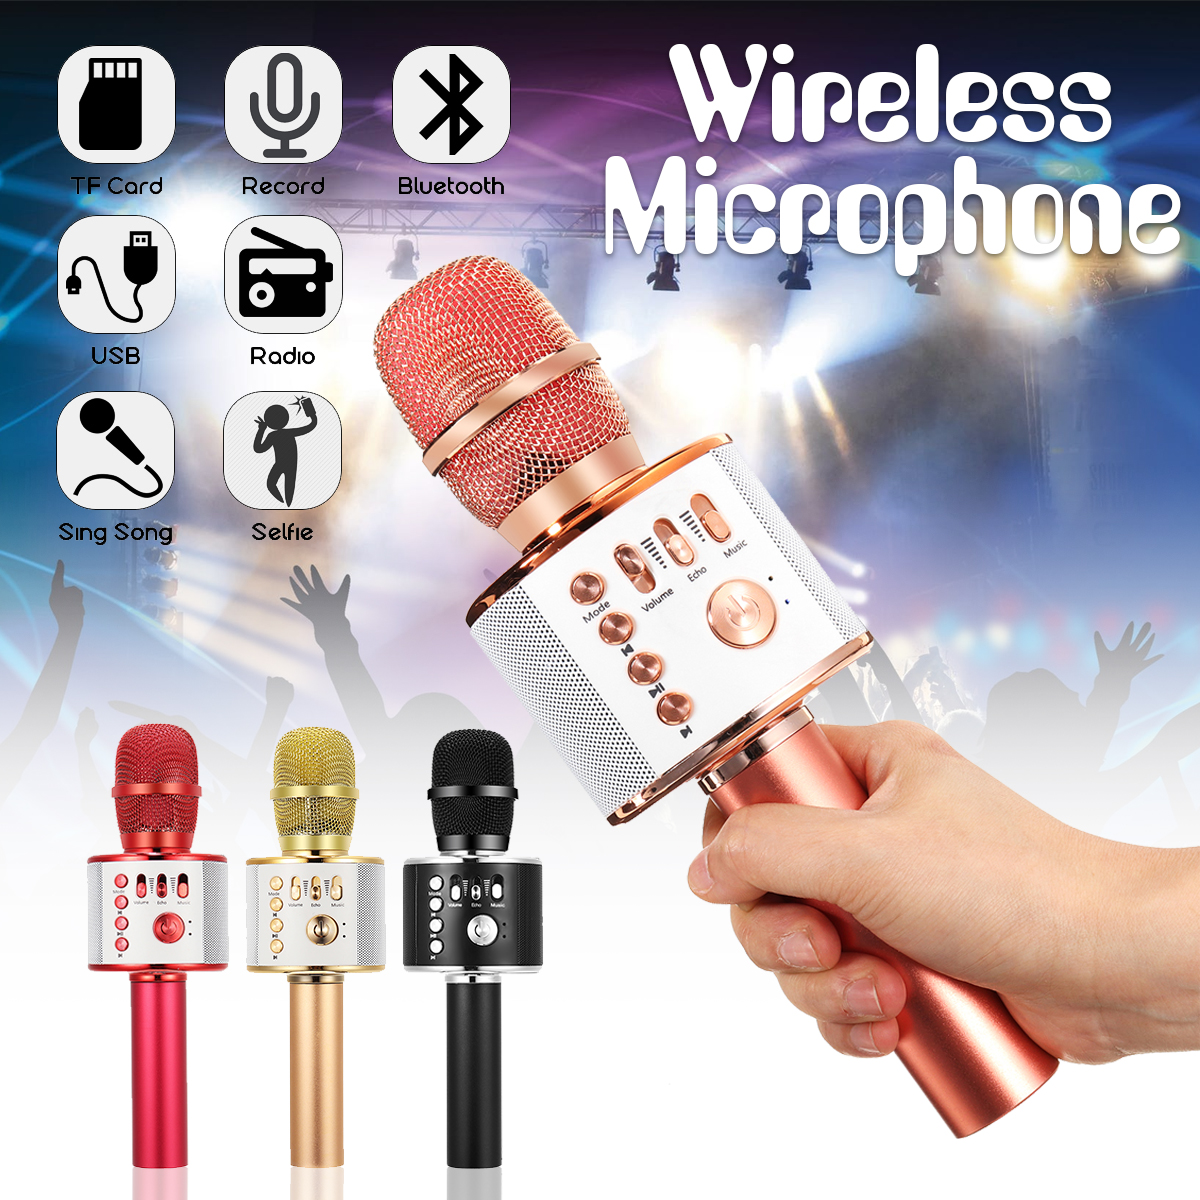 Wireless Karaoke Handheld Microphone USB KTV Player Bluetooth Mic Speaker qiateng bluetooth speaker v4 1 wireless karaoke player microphone with mic ktv singing record microphone for smartphone computer